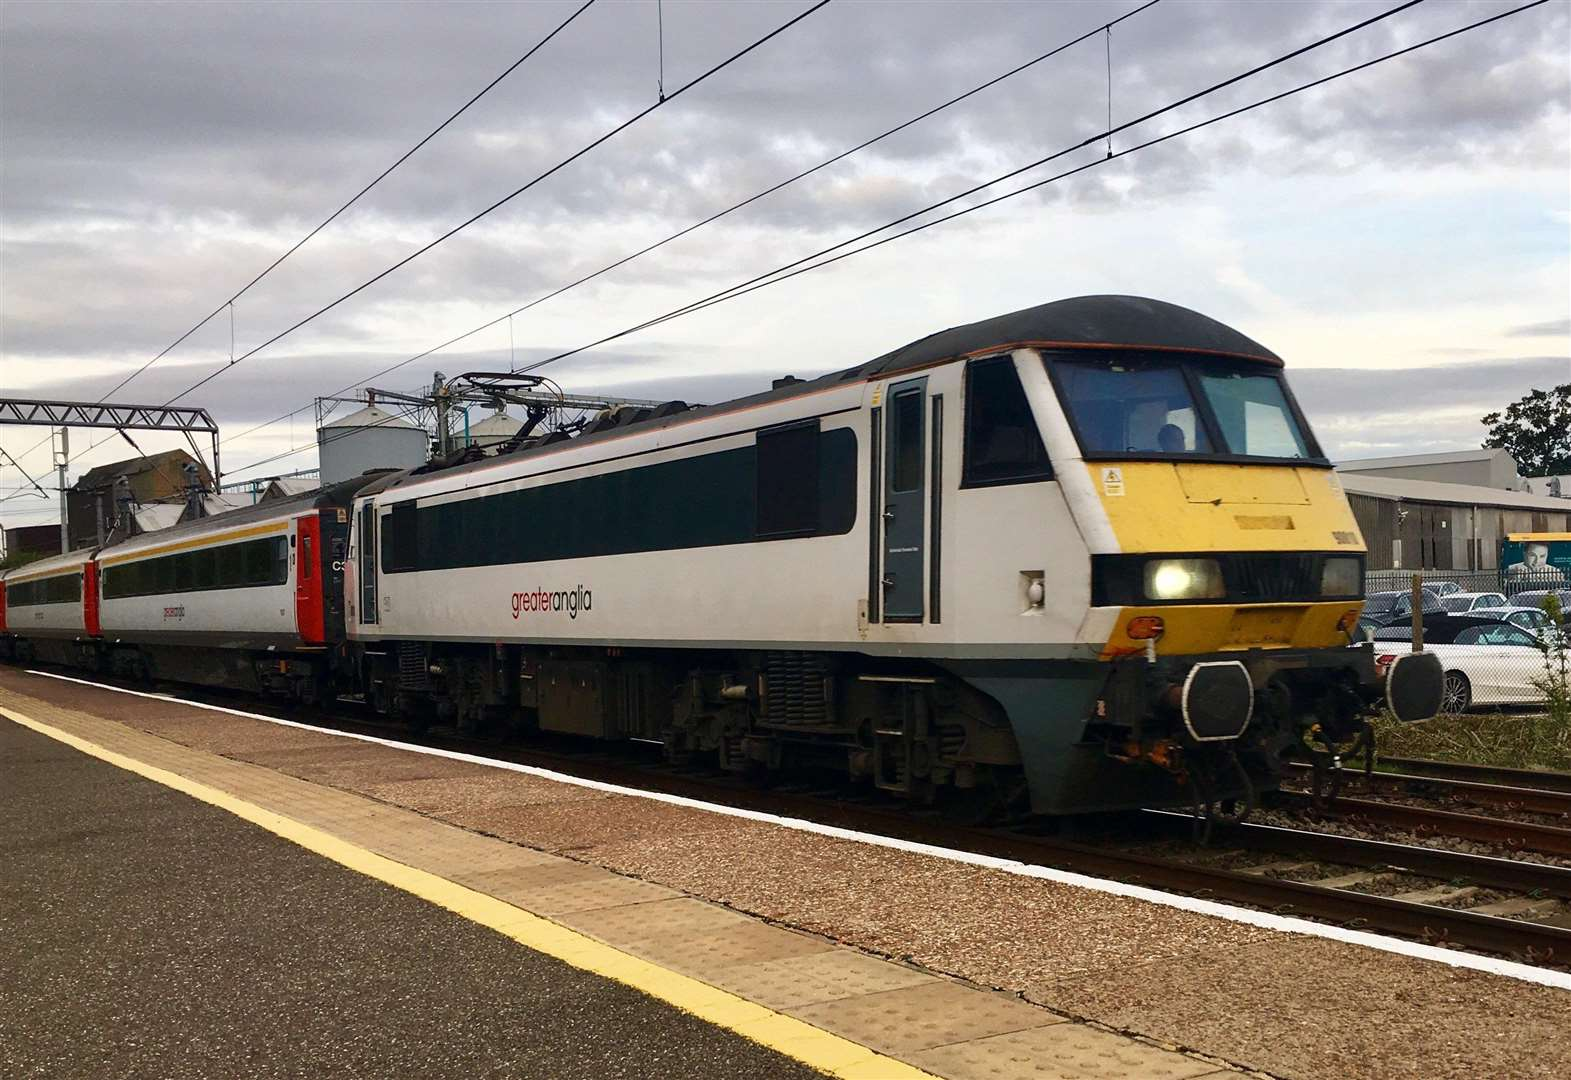 Greater Anglia services to get back on track